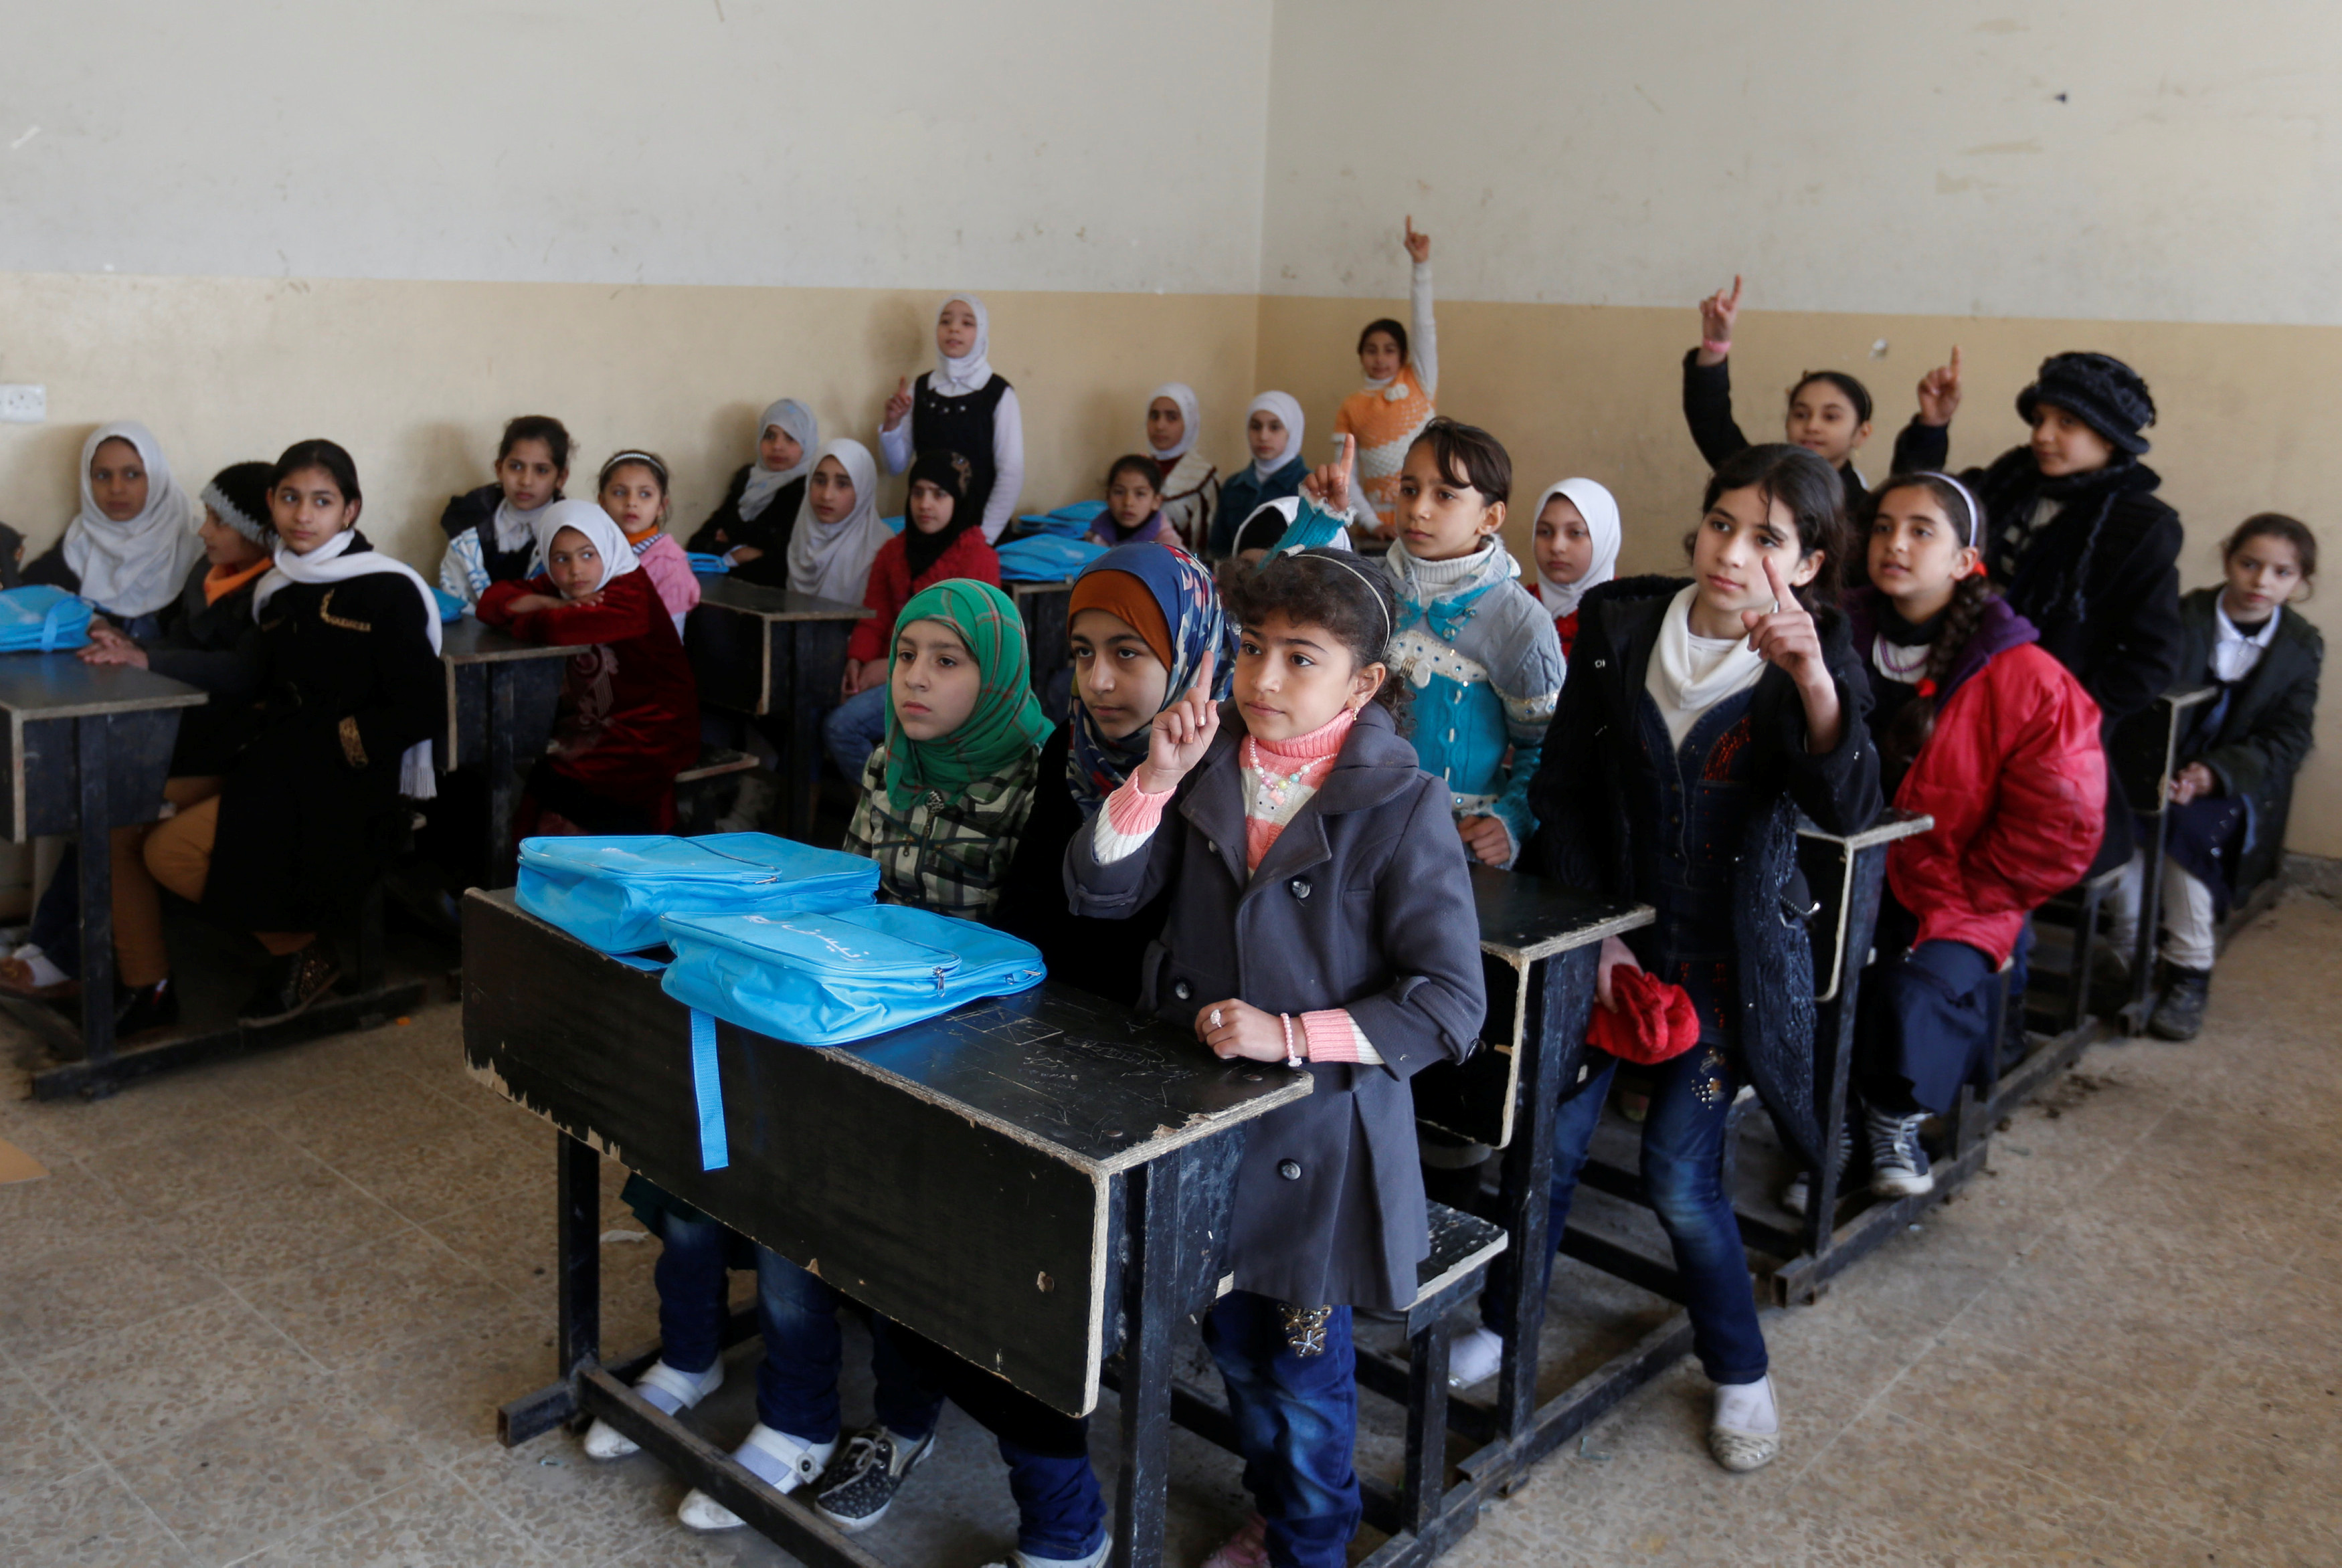 About 30 schools opened in eastern Mosul after Iraqi forces took back control from the Islamic State group. Photo by Muhammad Hamed/Reuters